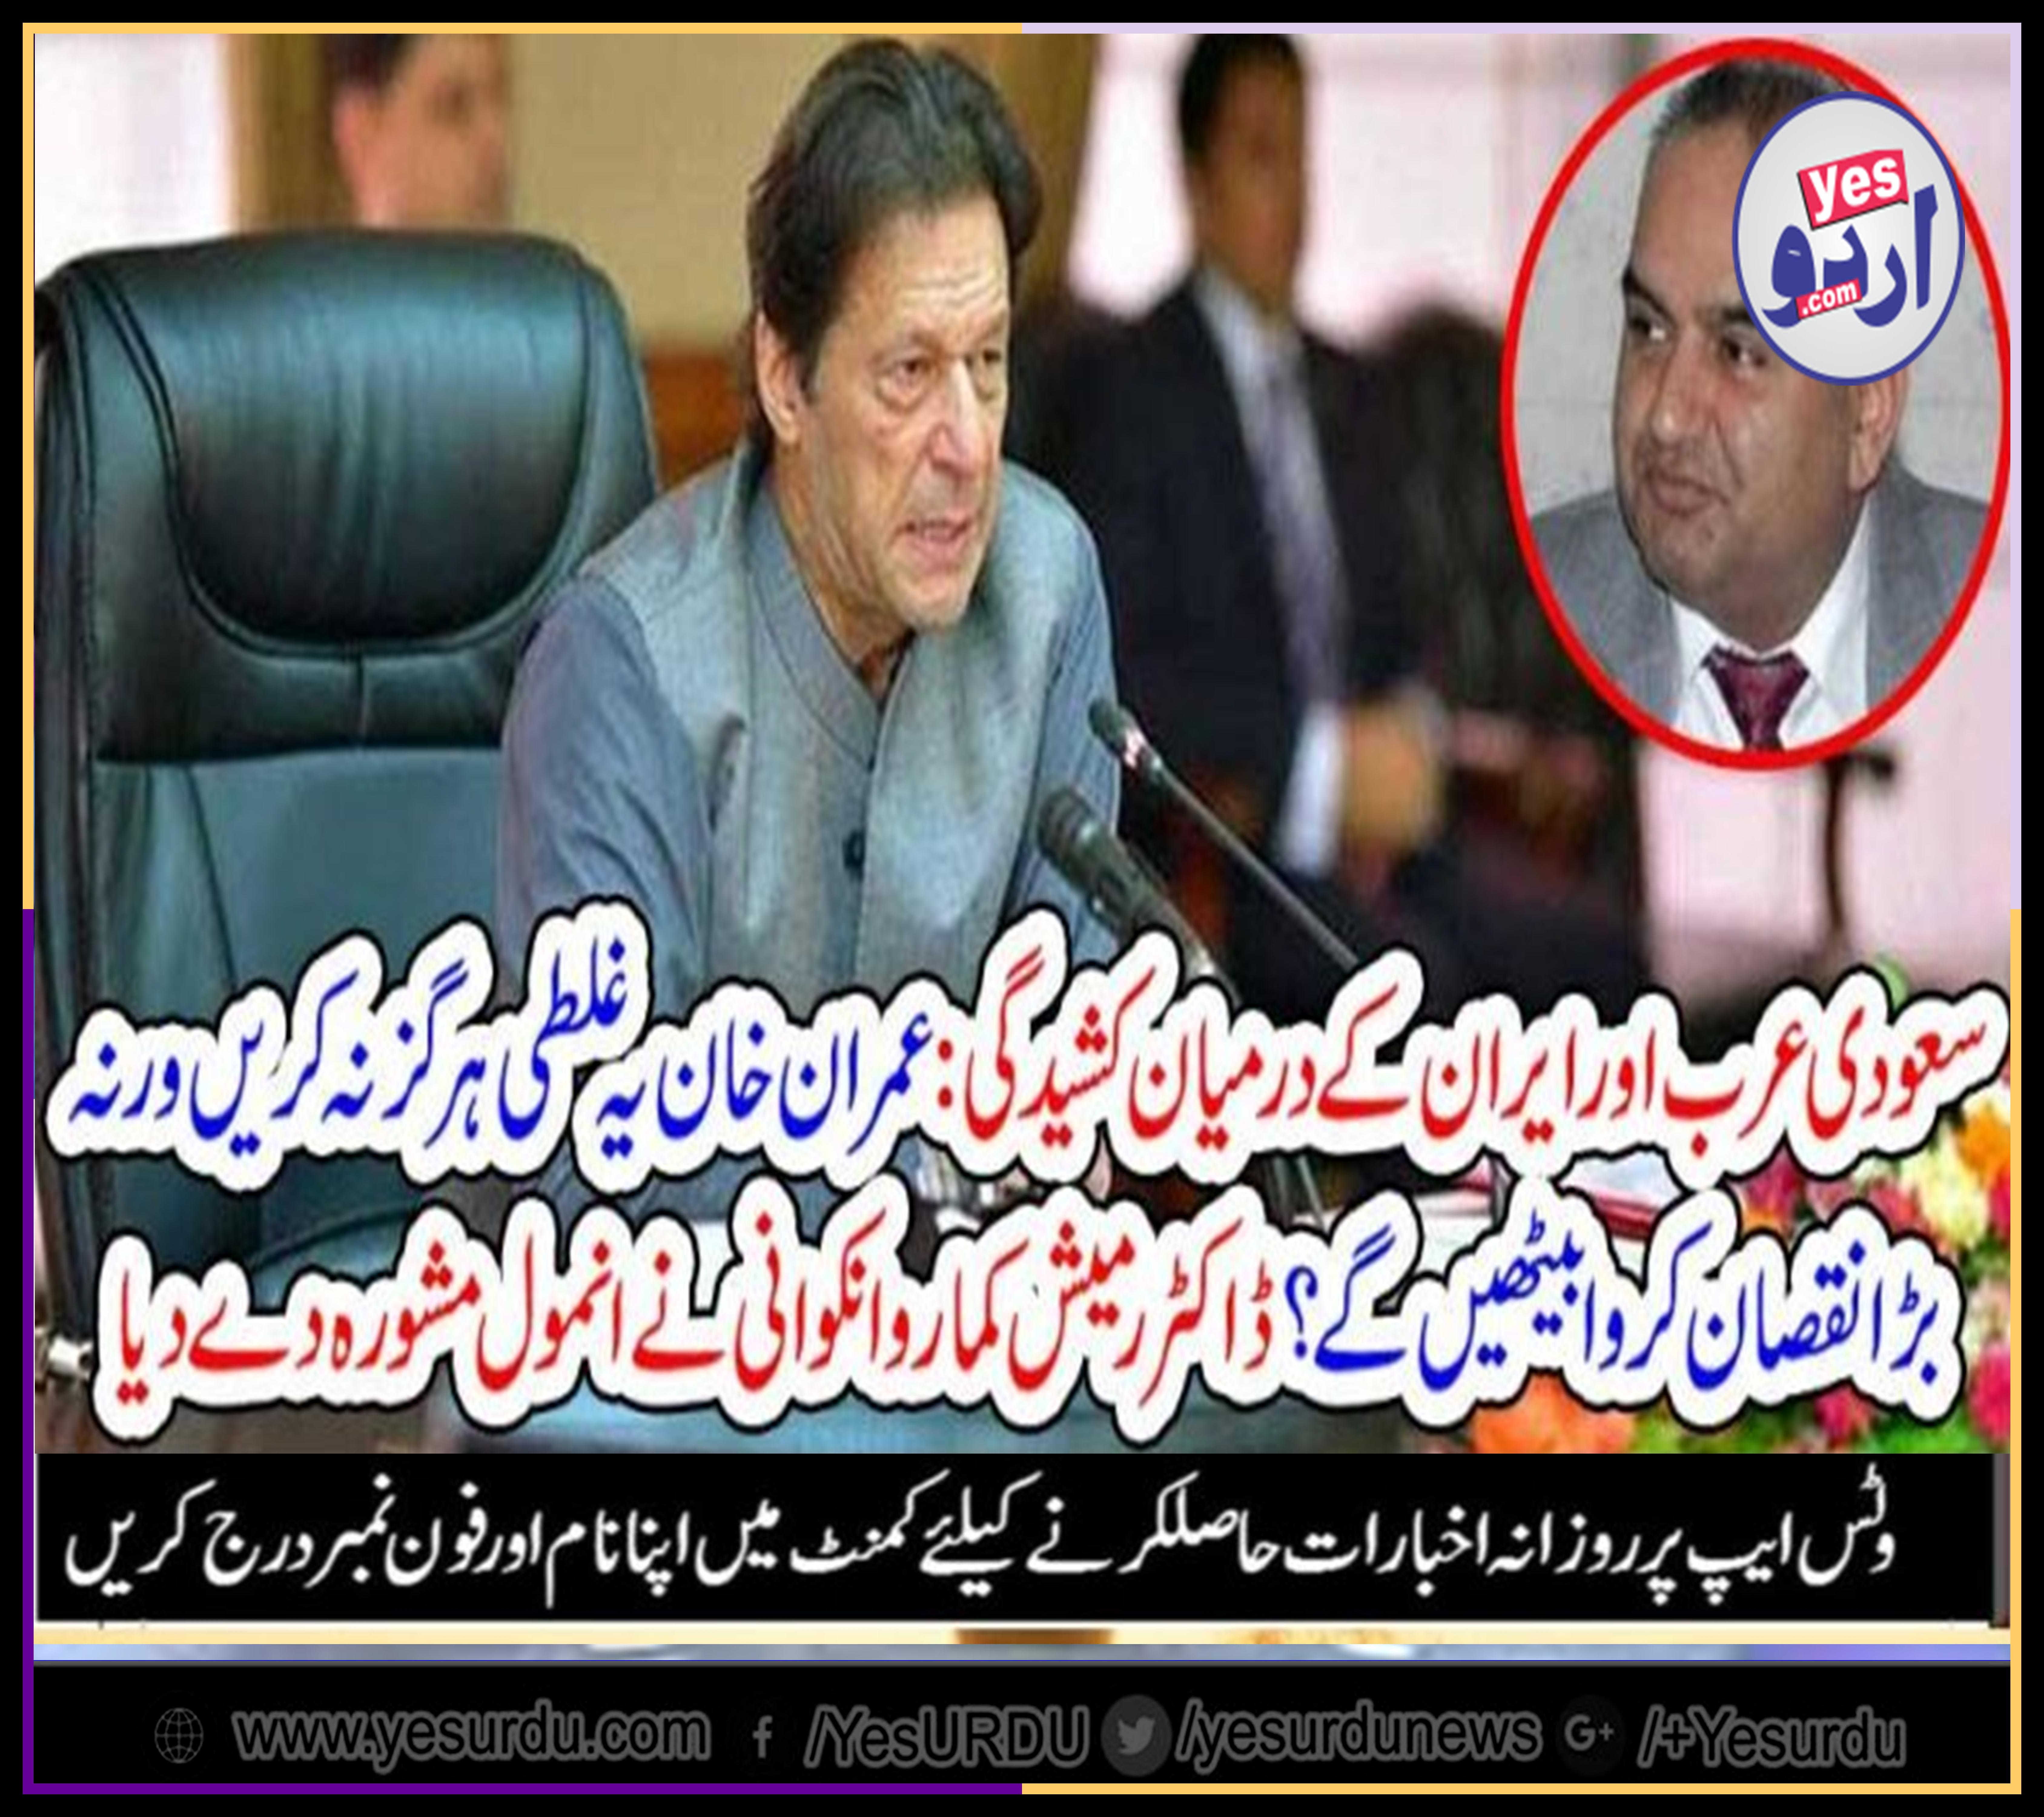 IMRAN KHAN, SHOULD, GET, AWAY, FROM, IRAN, SAUDI, ARRABIA, TENSION, OTHER WISE, THERE, CAN, BE, A, BIG, LOSS, SAYS, PTI, LEADER, RAMESH KUMAR